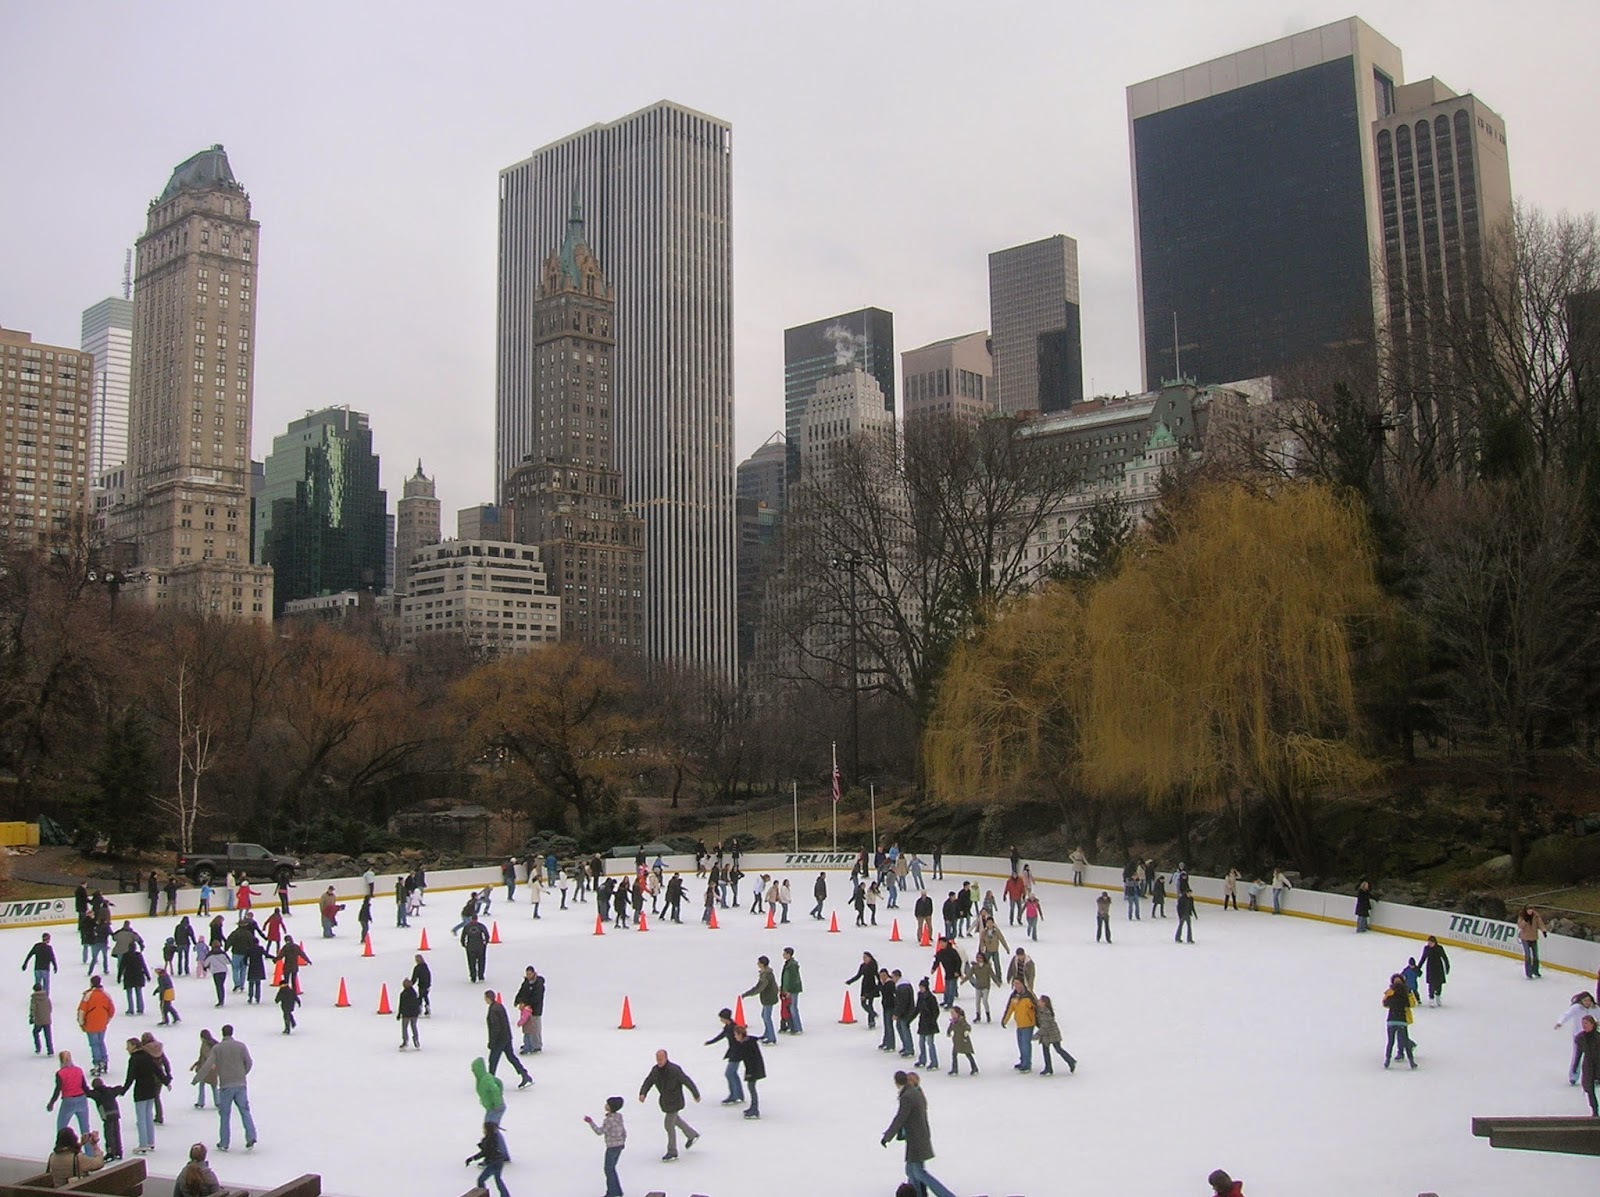 ice skating in central park in new york city